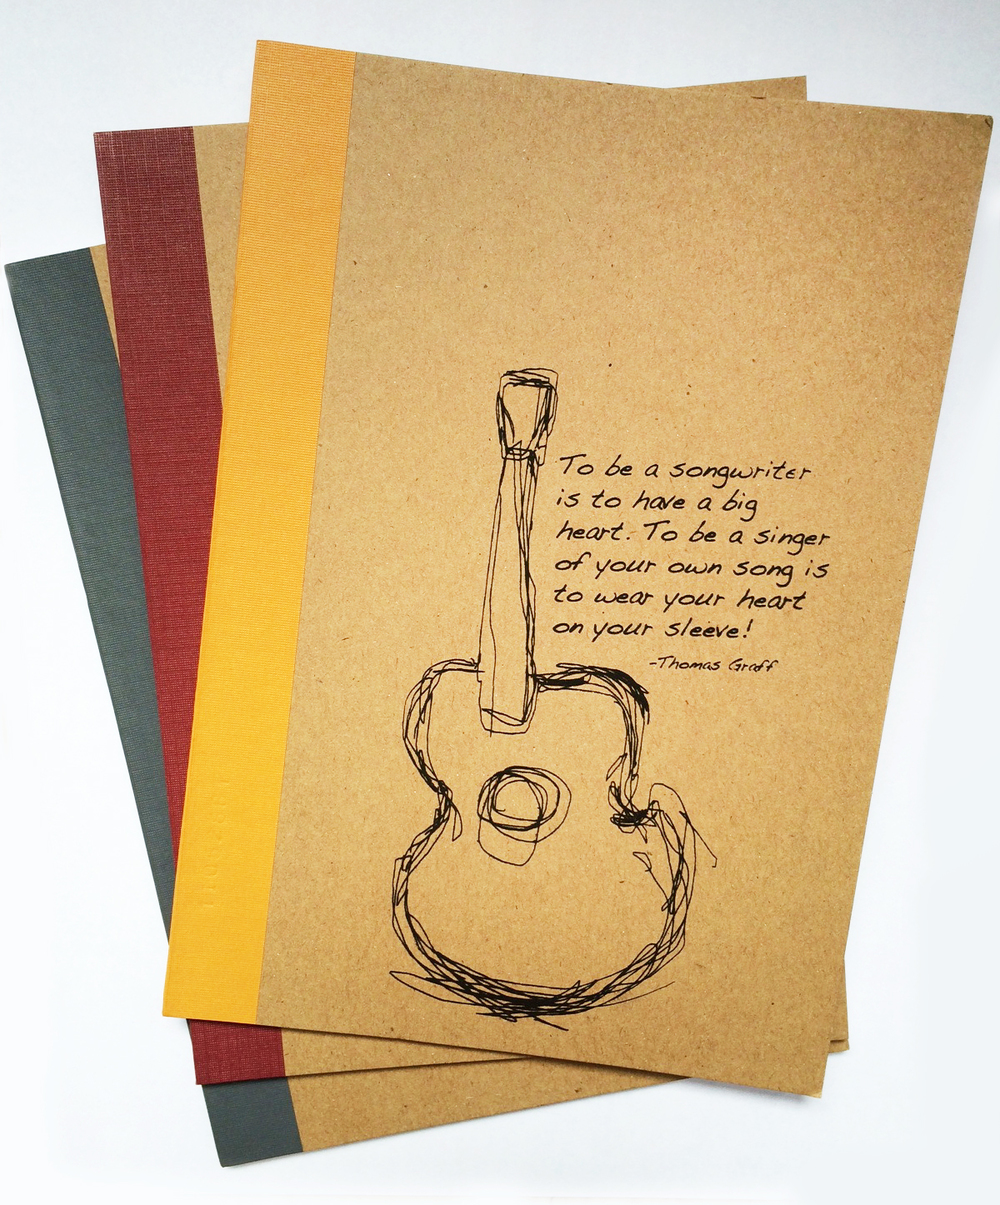 DESIGN 2: Vivid Guitar with Quote